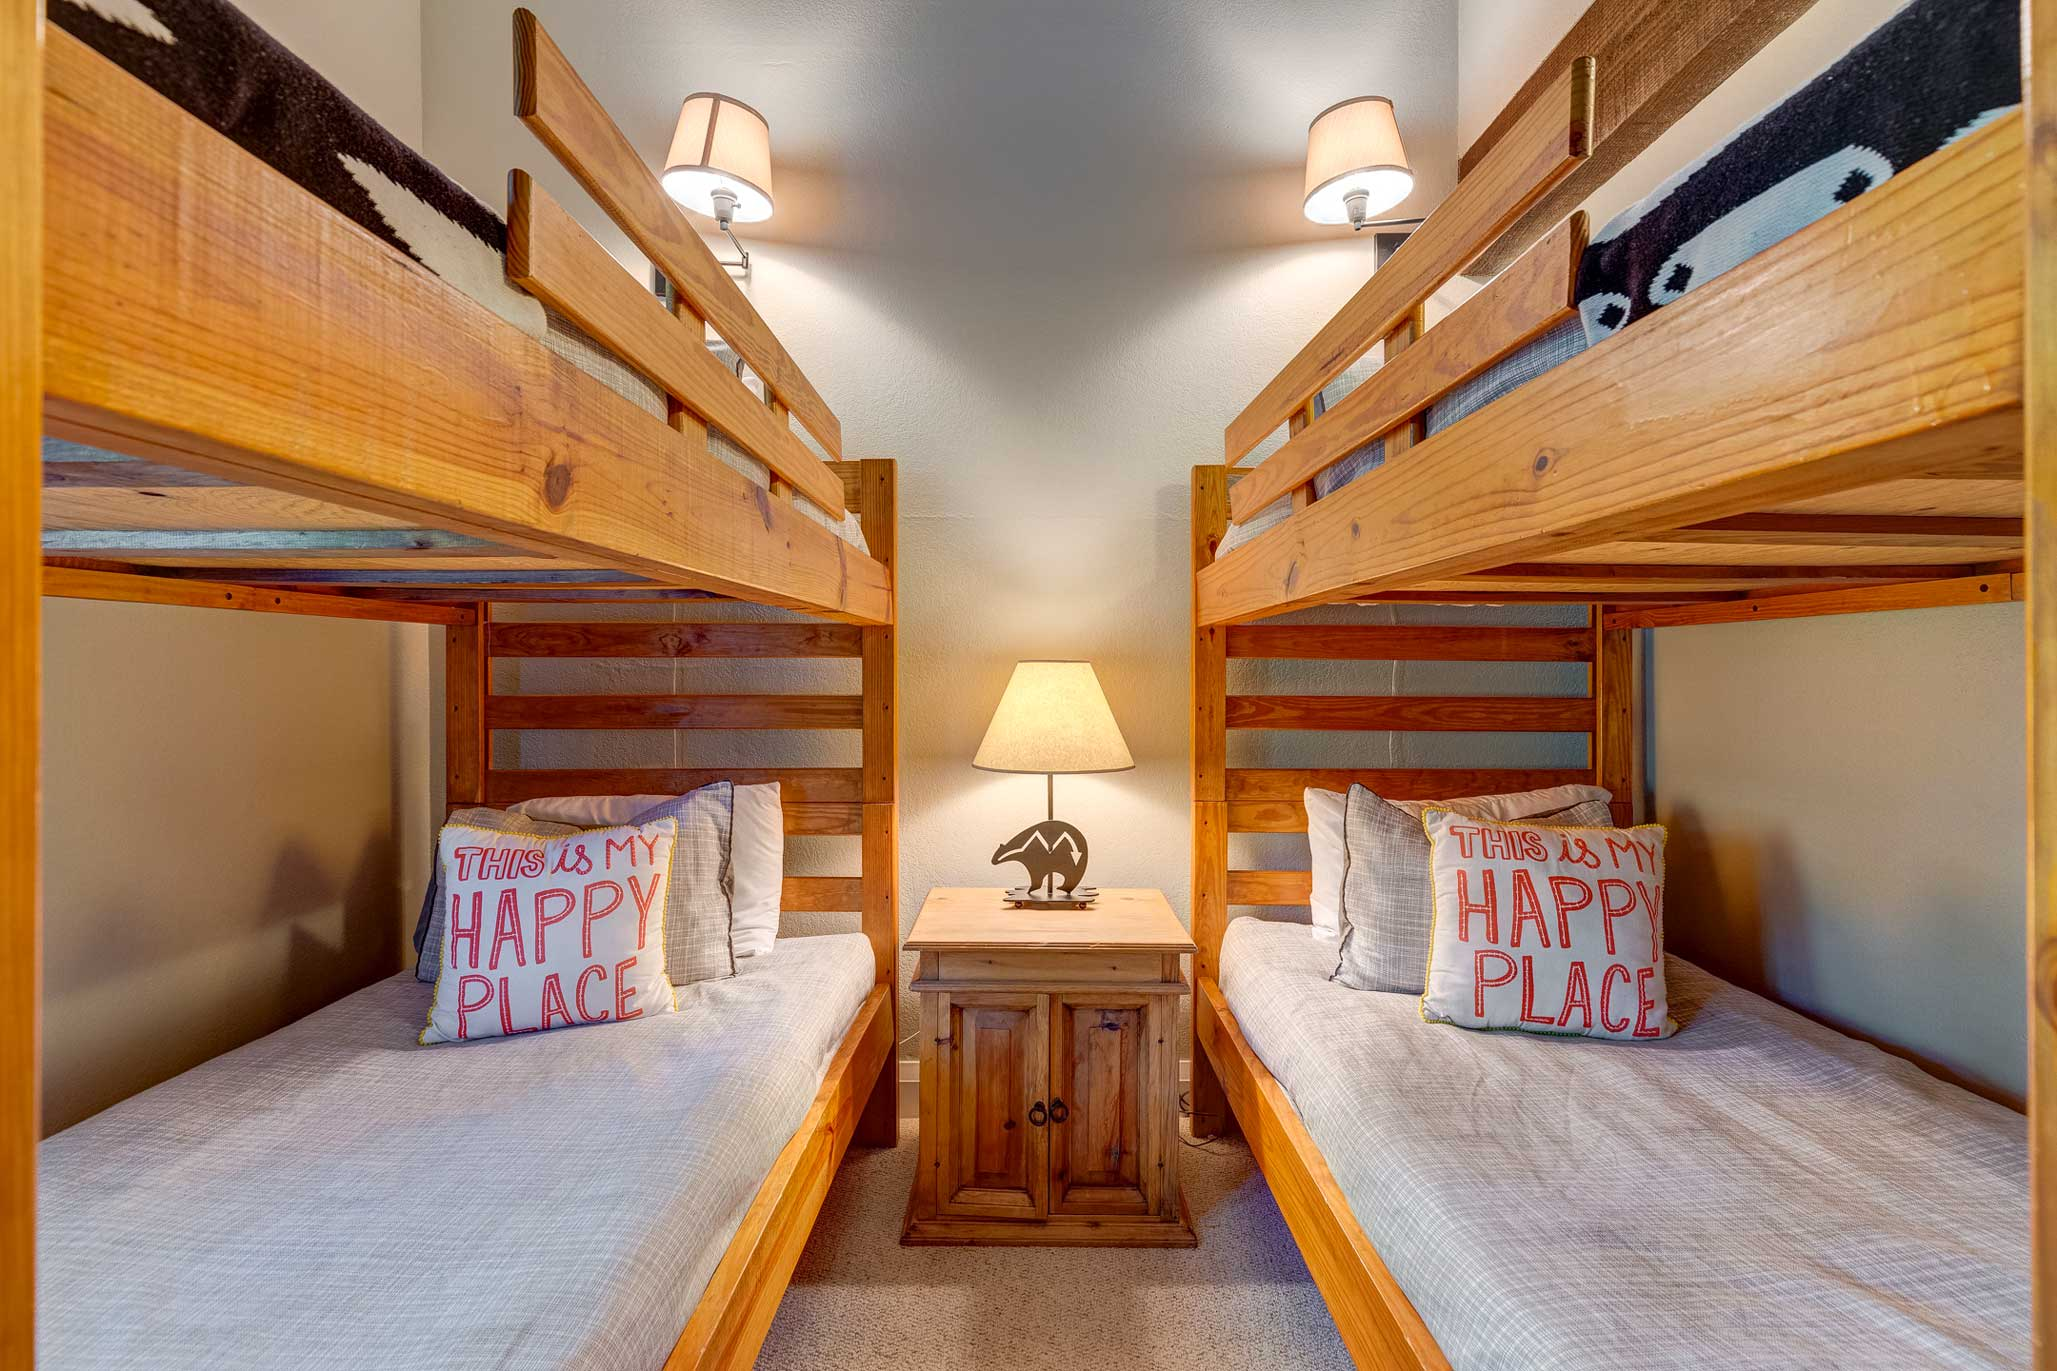 Kids will love sharing this room!